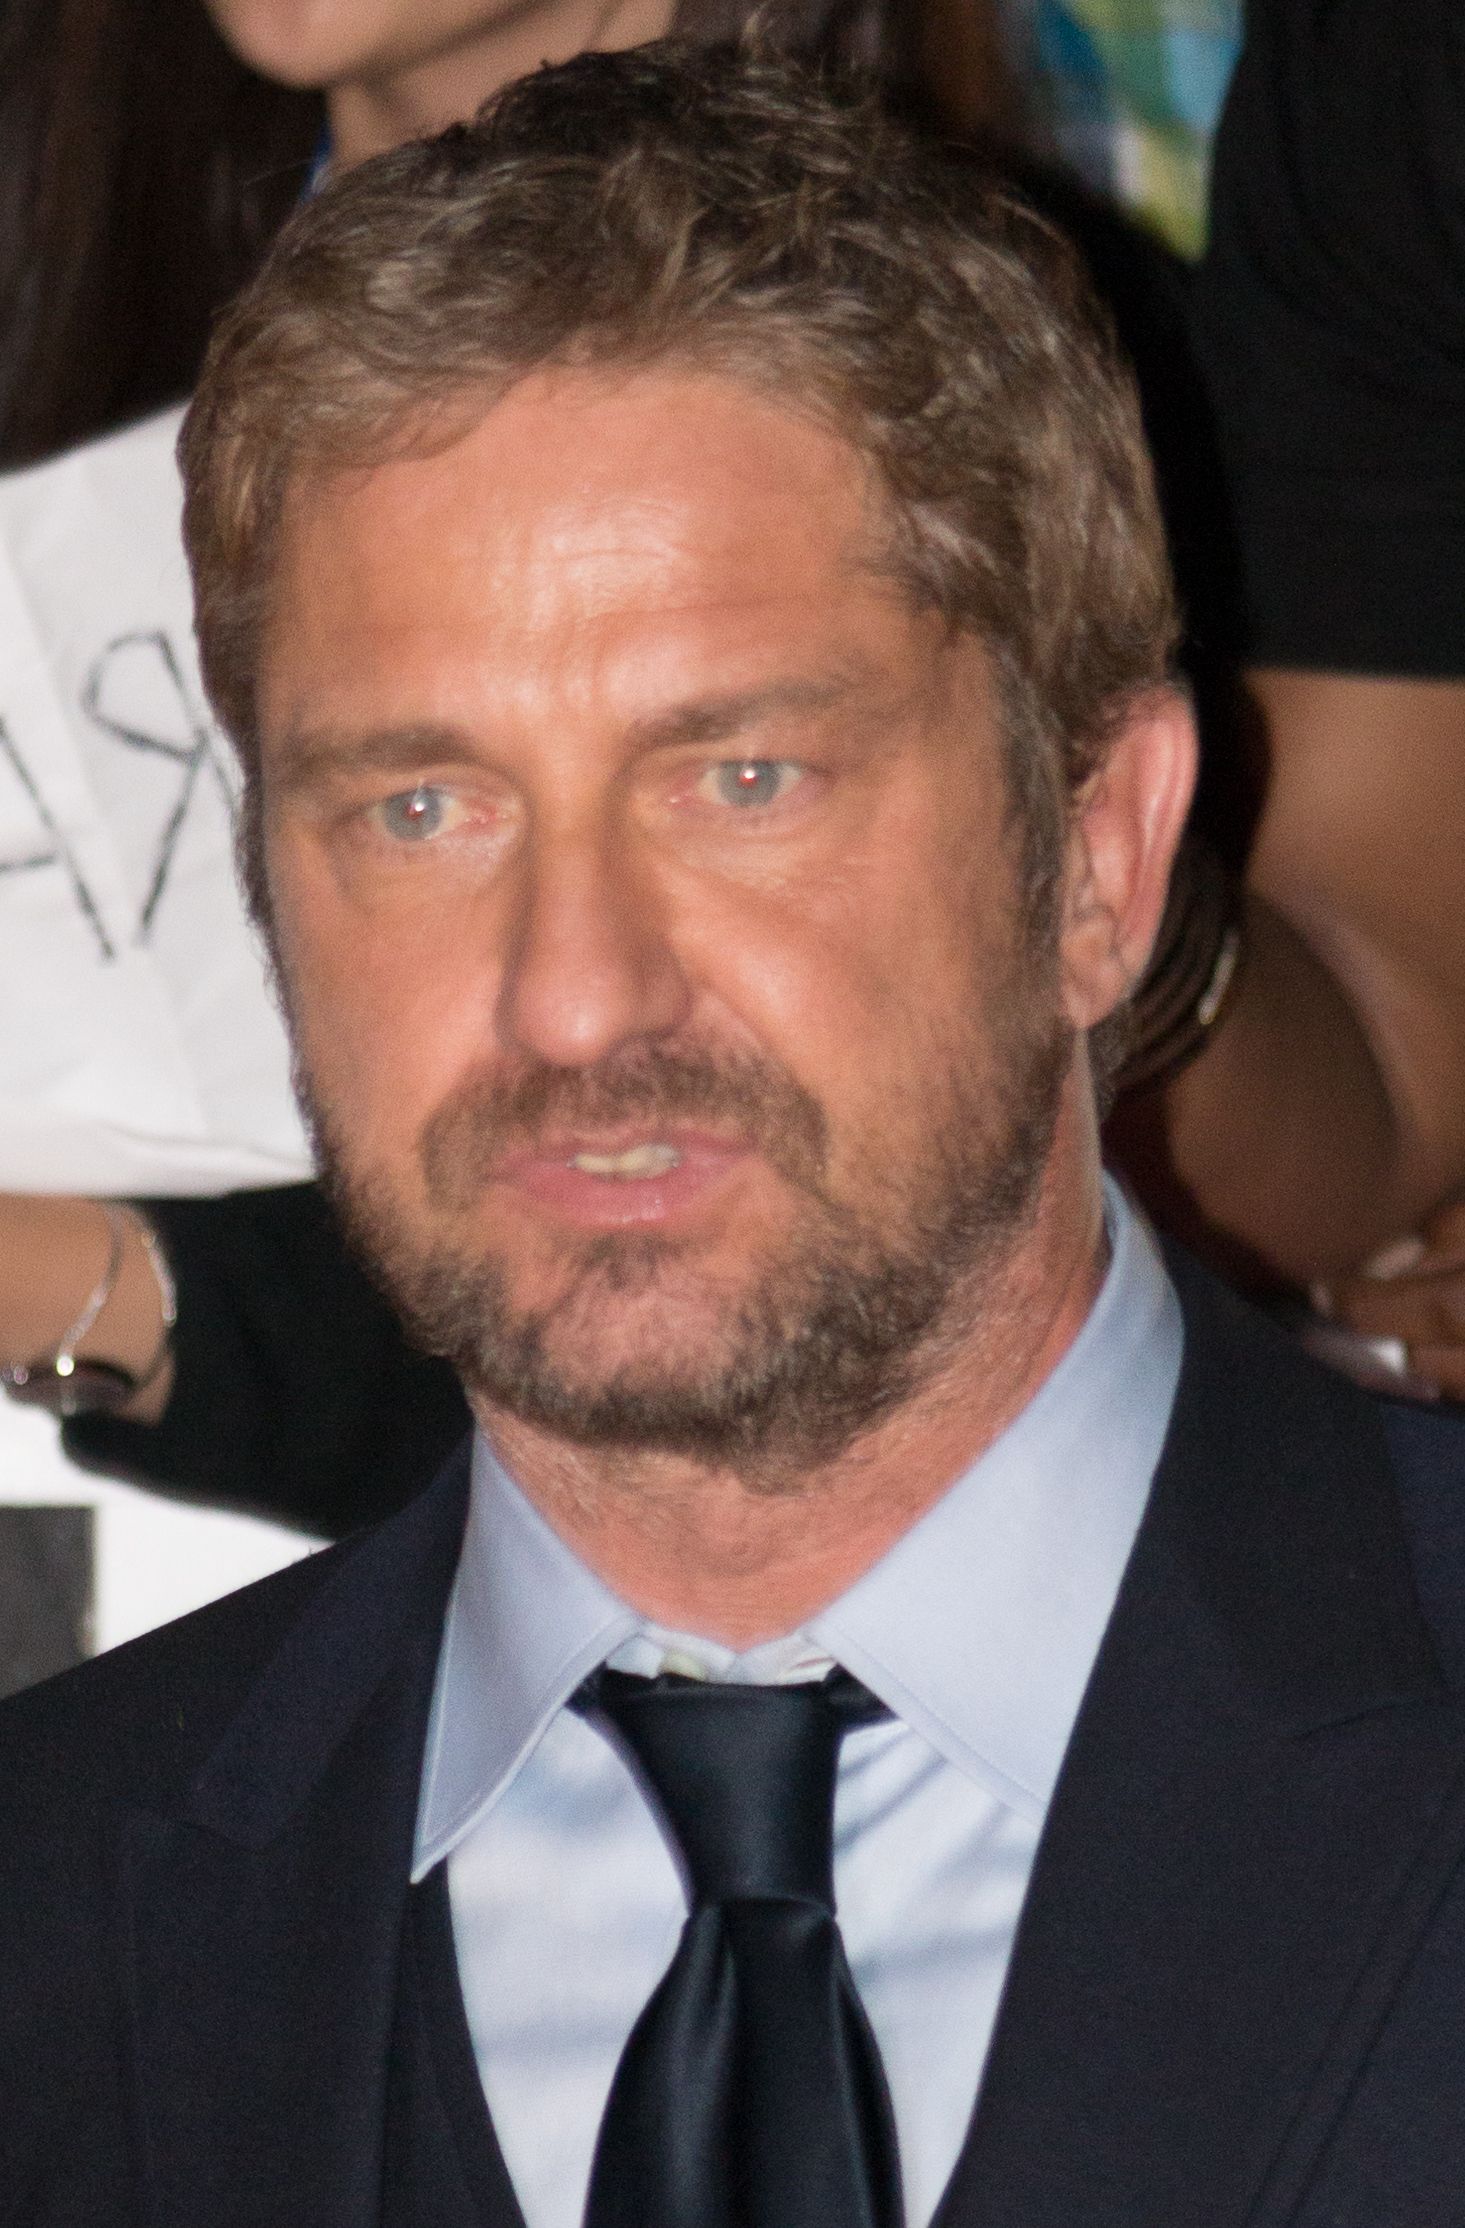 Gerard Butler Wife And Kids gerard butler - wikipedia, the free ... Gerard Butler